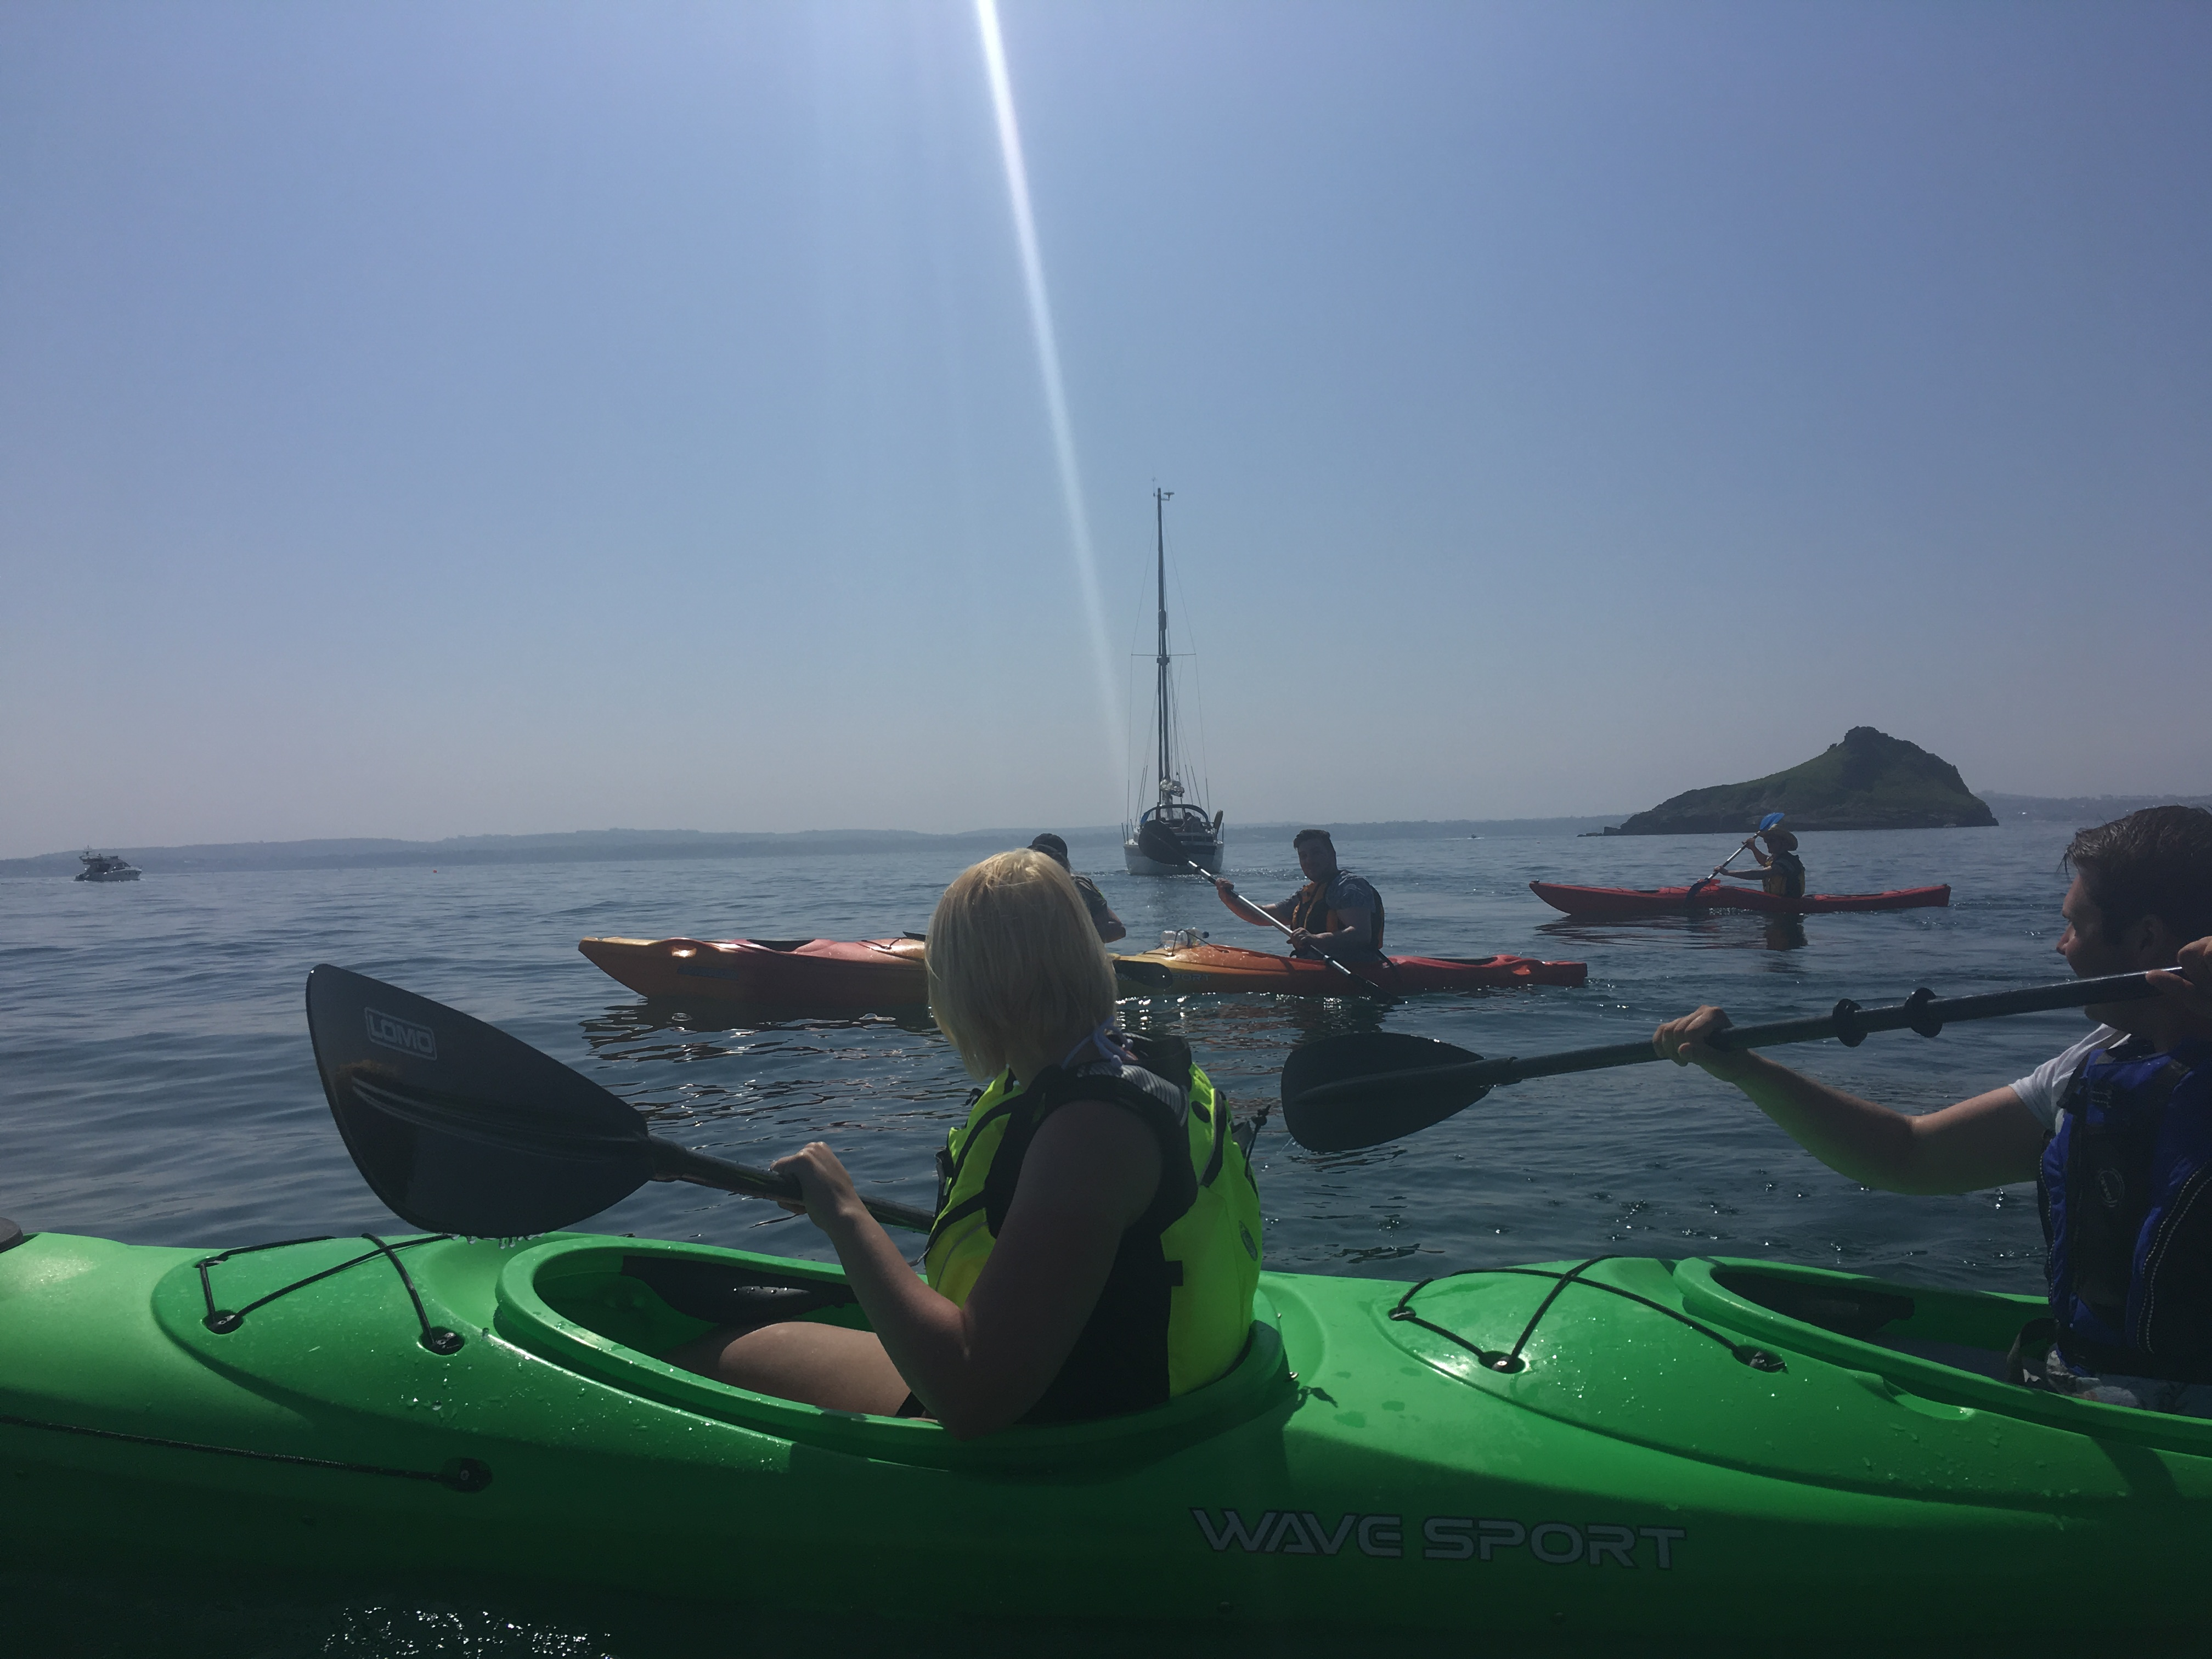 Kayak Tour out to the Orestone Rock, Torquay